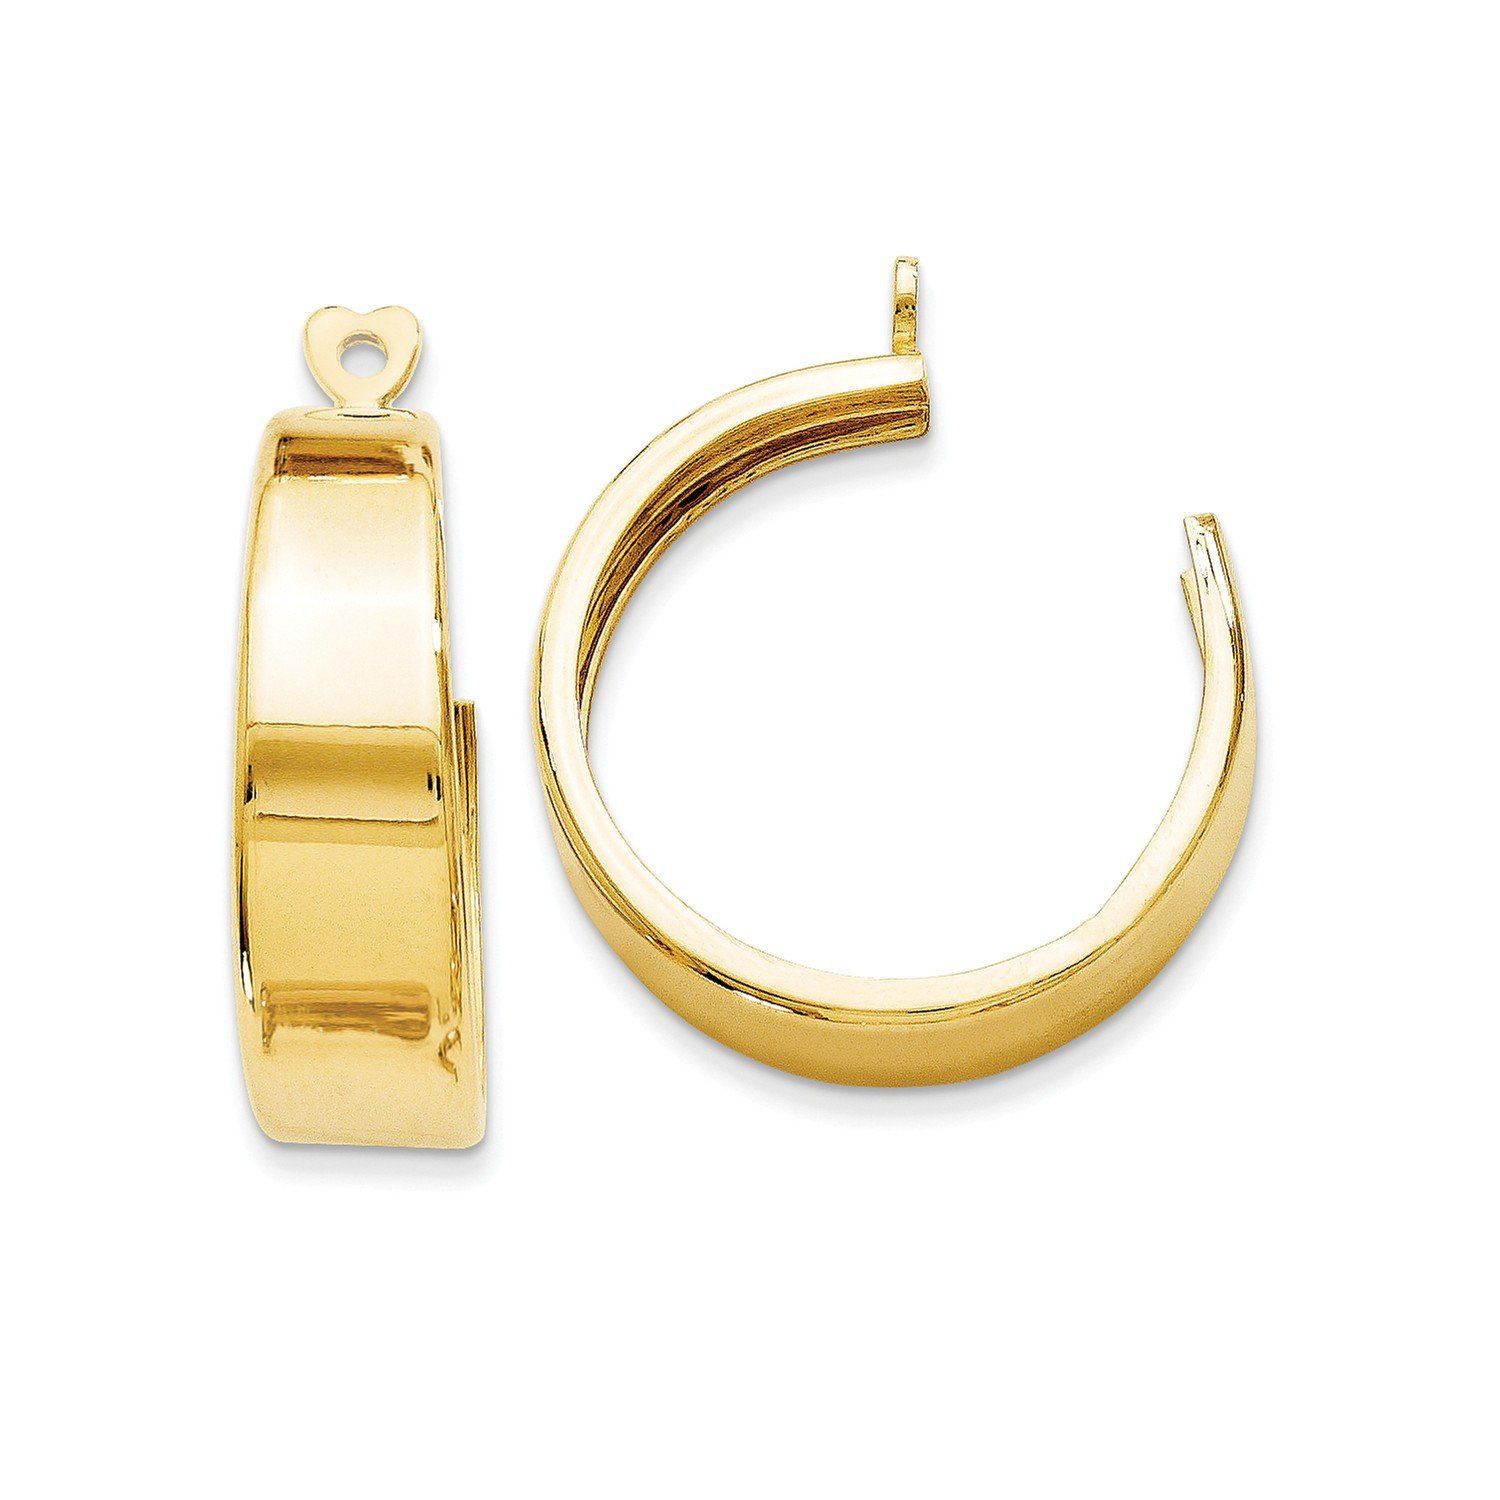 Roy Rose Jewelry 14K Yellow Gold Polished Hoop Earring Jackets 24mm length